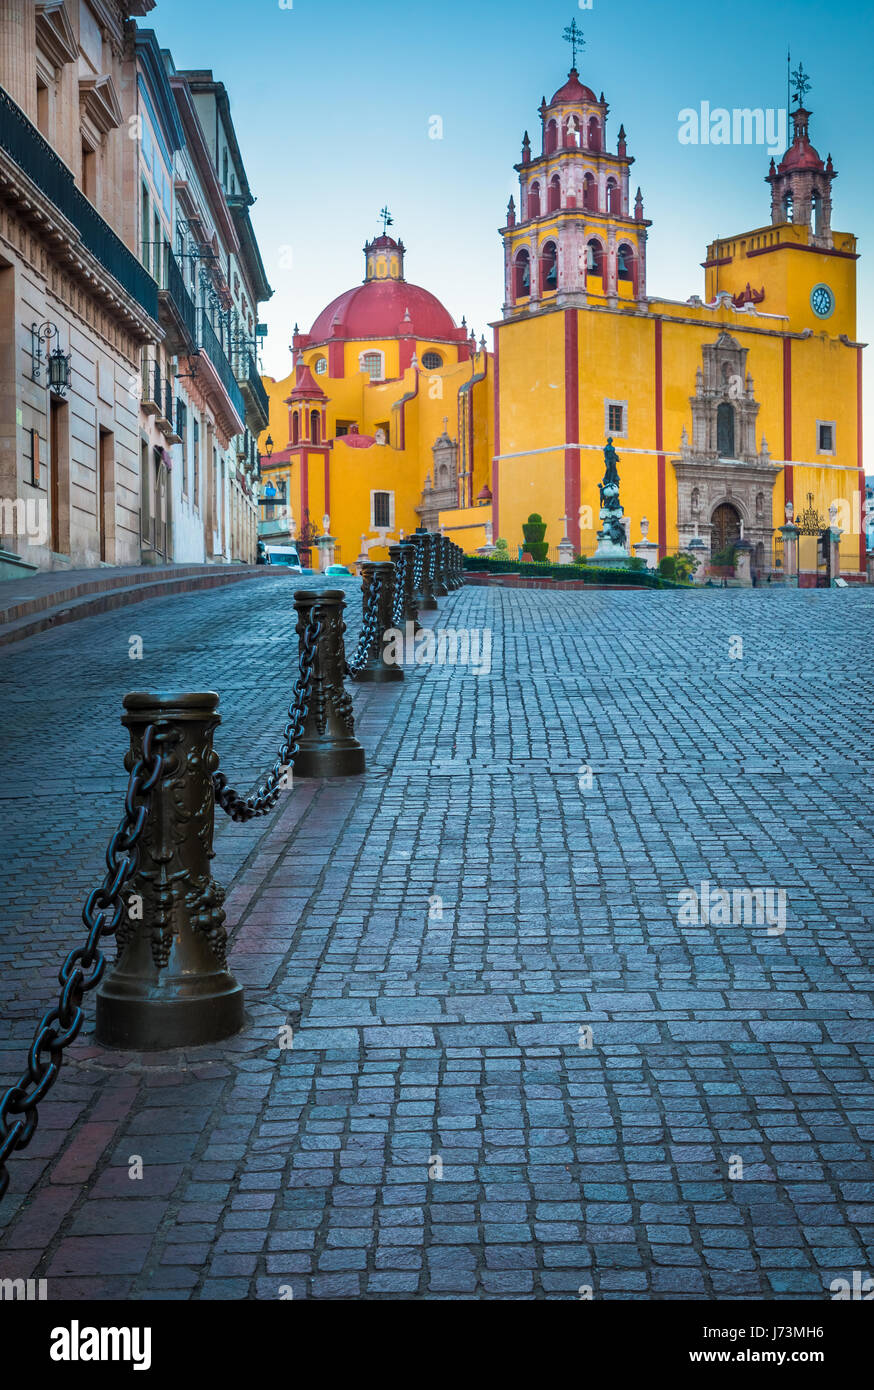 Basílica Colegiata de Nuestra Señora de Guanajuato is considered one of the most emblematic structures - Stock Image